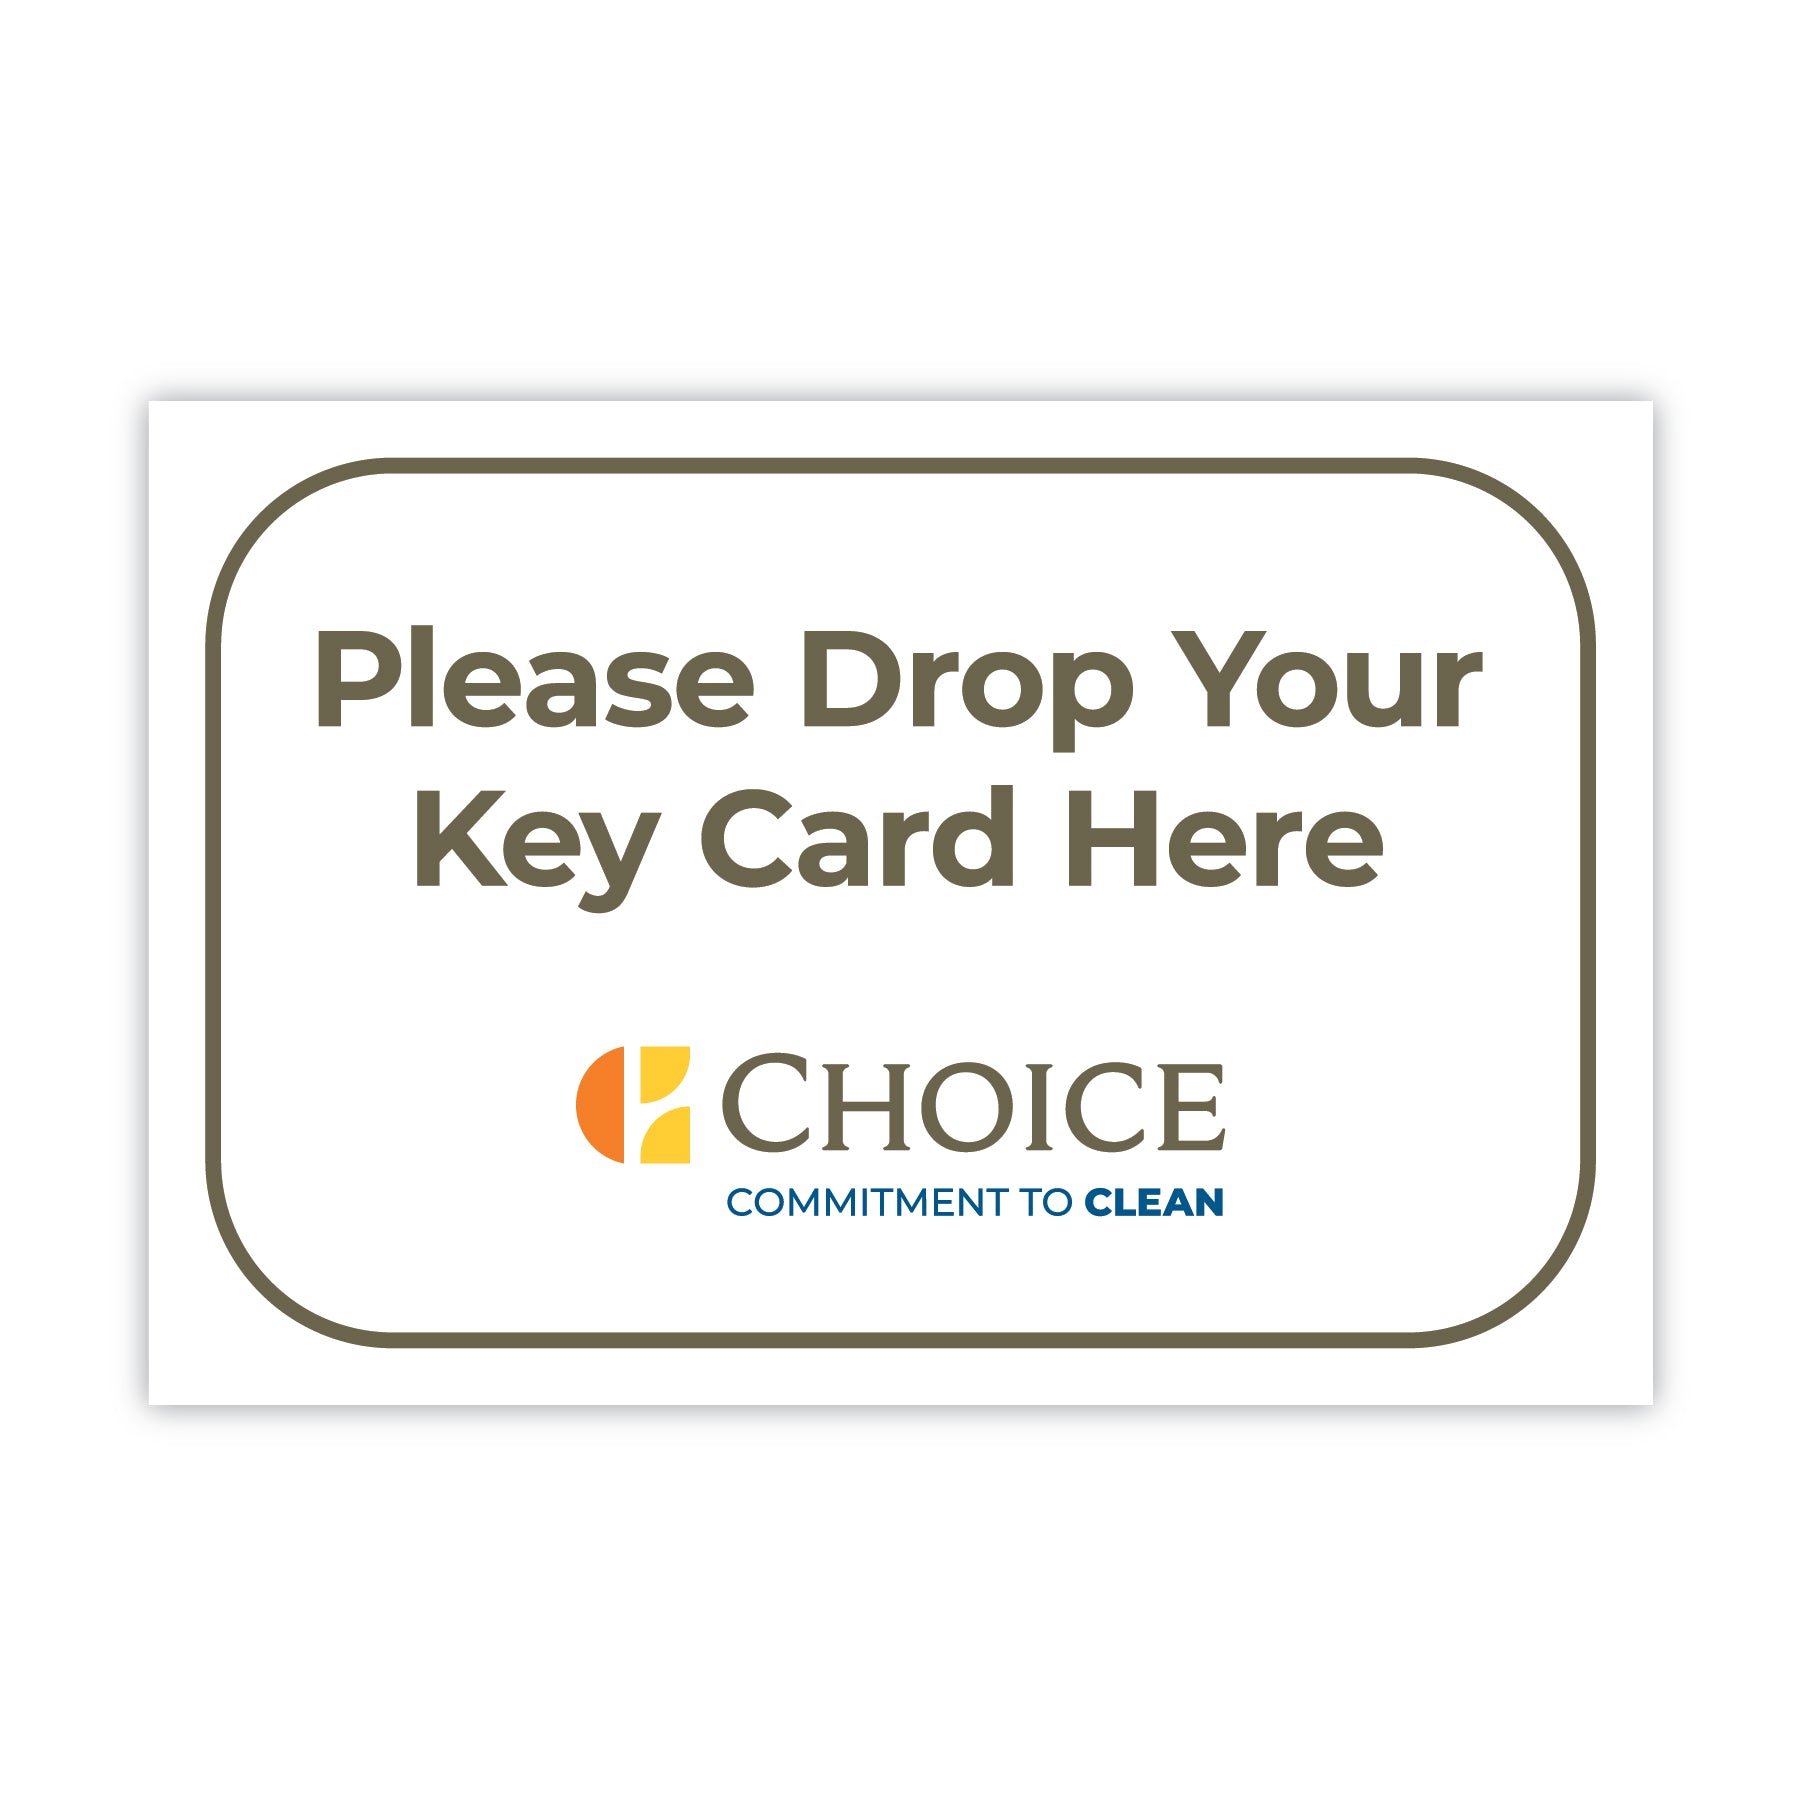 Key Card Drop Box Sign